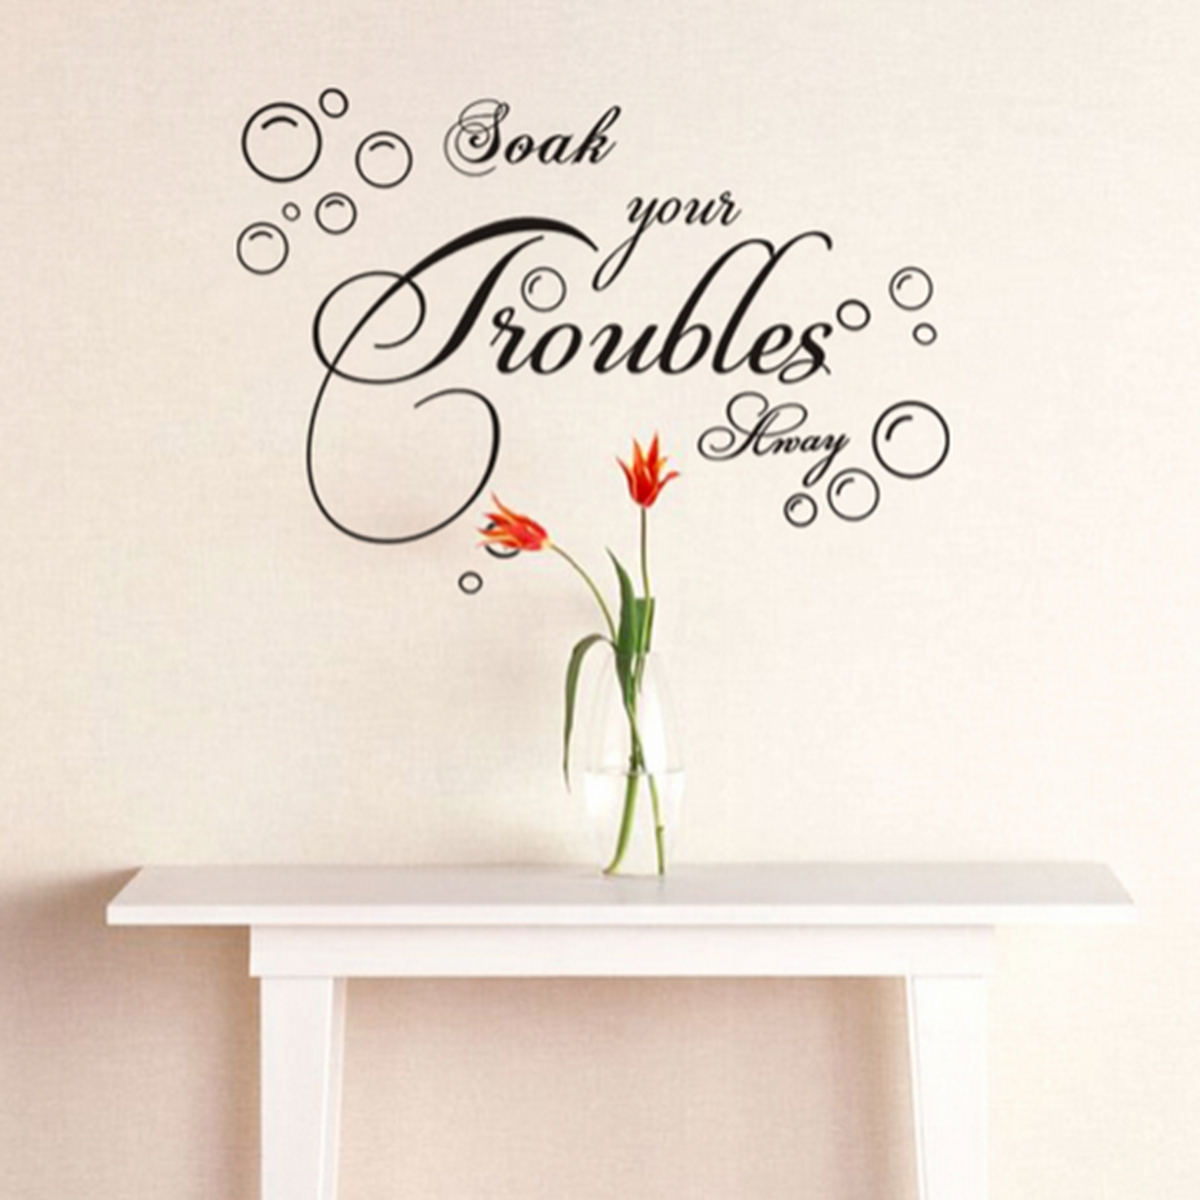 soak your trouble away art quote wall decal decor vinyl glass backsplash wall tiles kitchen bathroom wall stickers